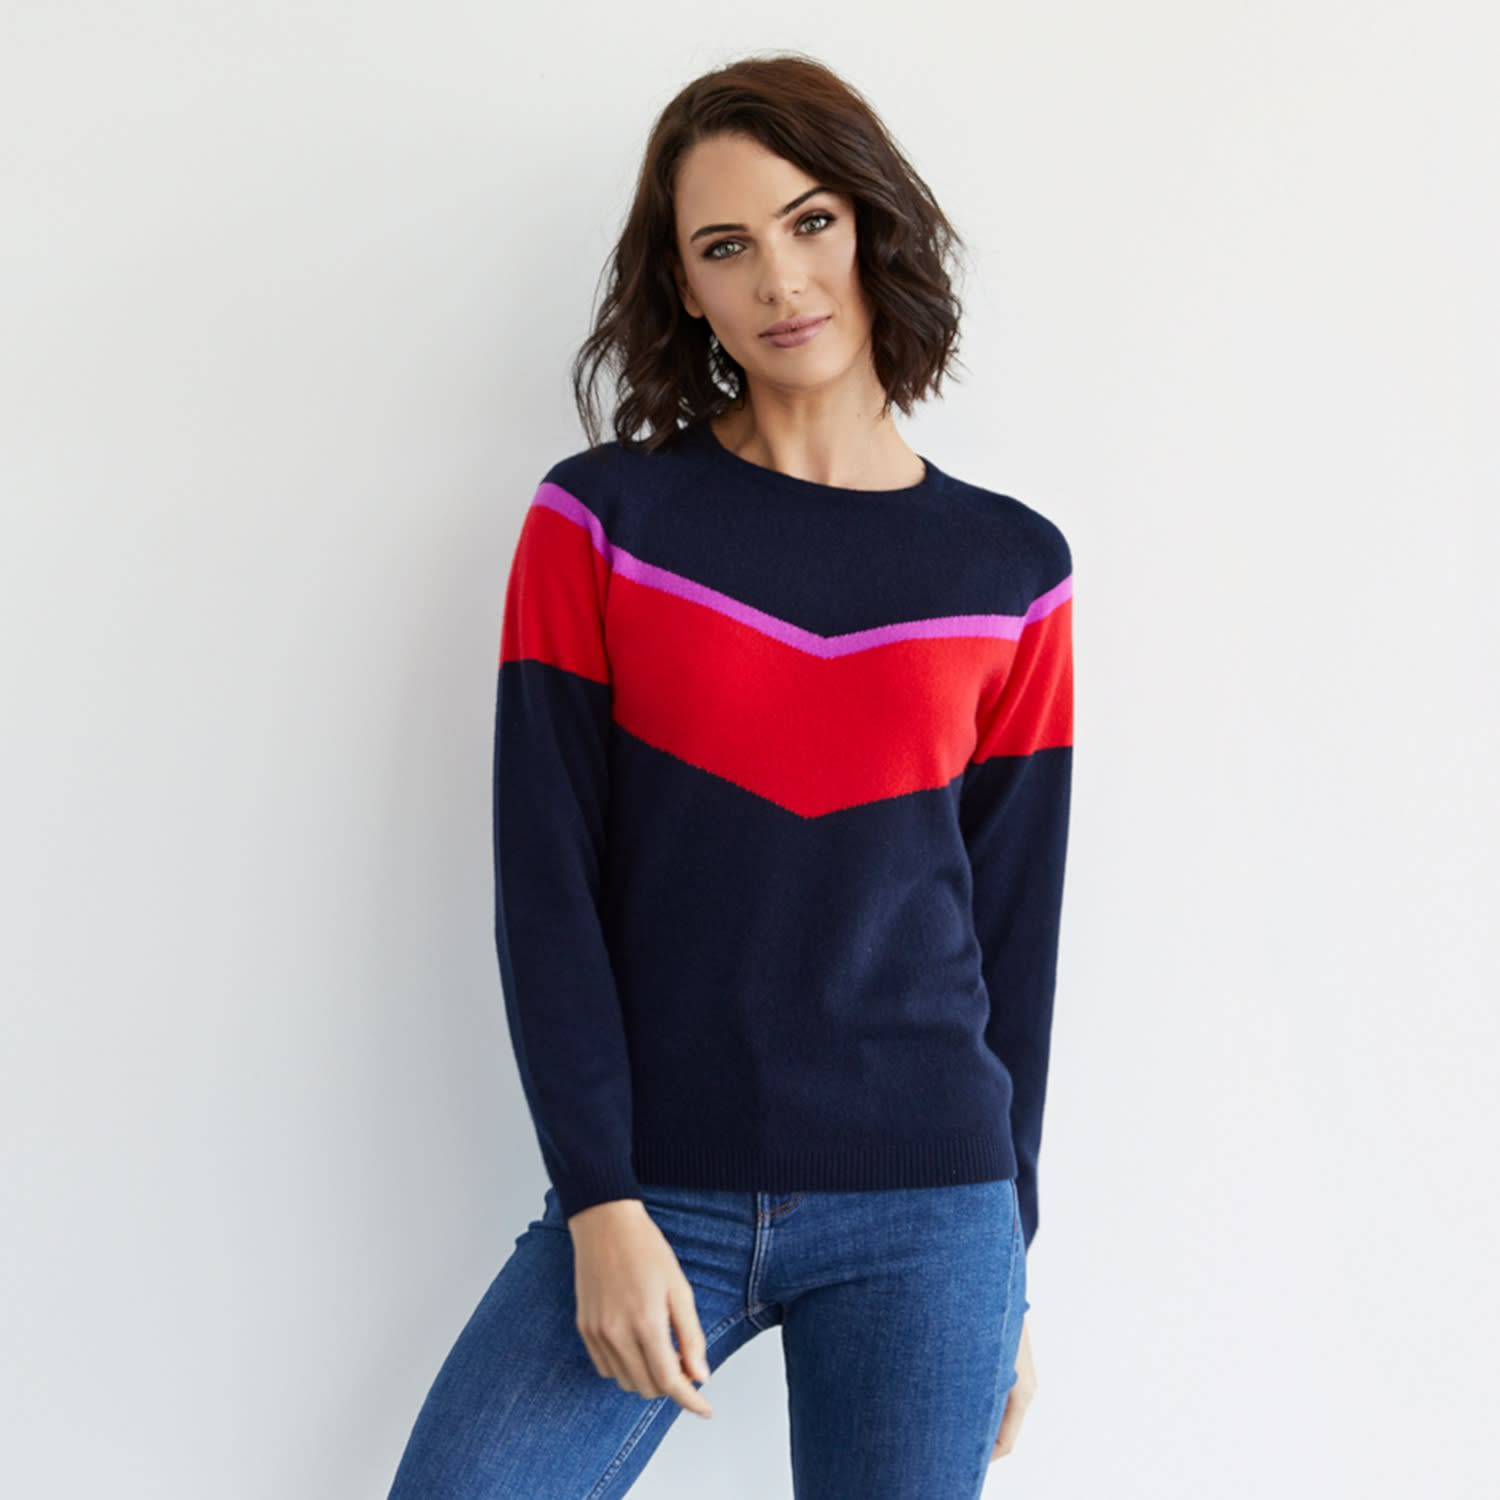 8a15d795e1 Alice Navy Cashmere Jumper by Cove